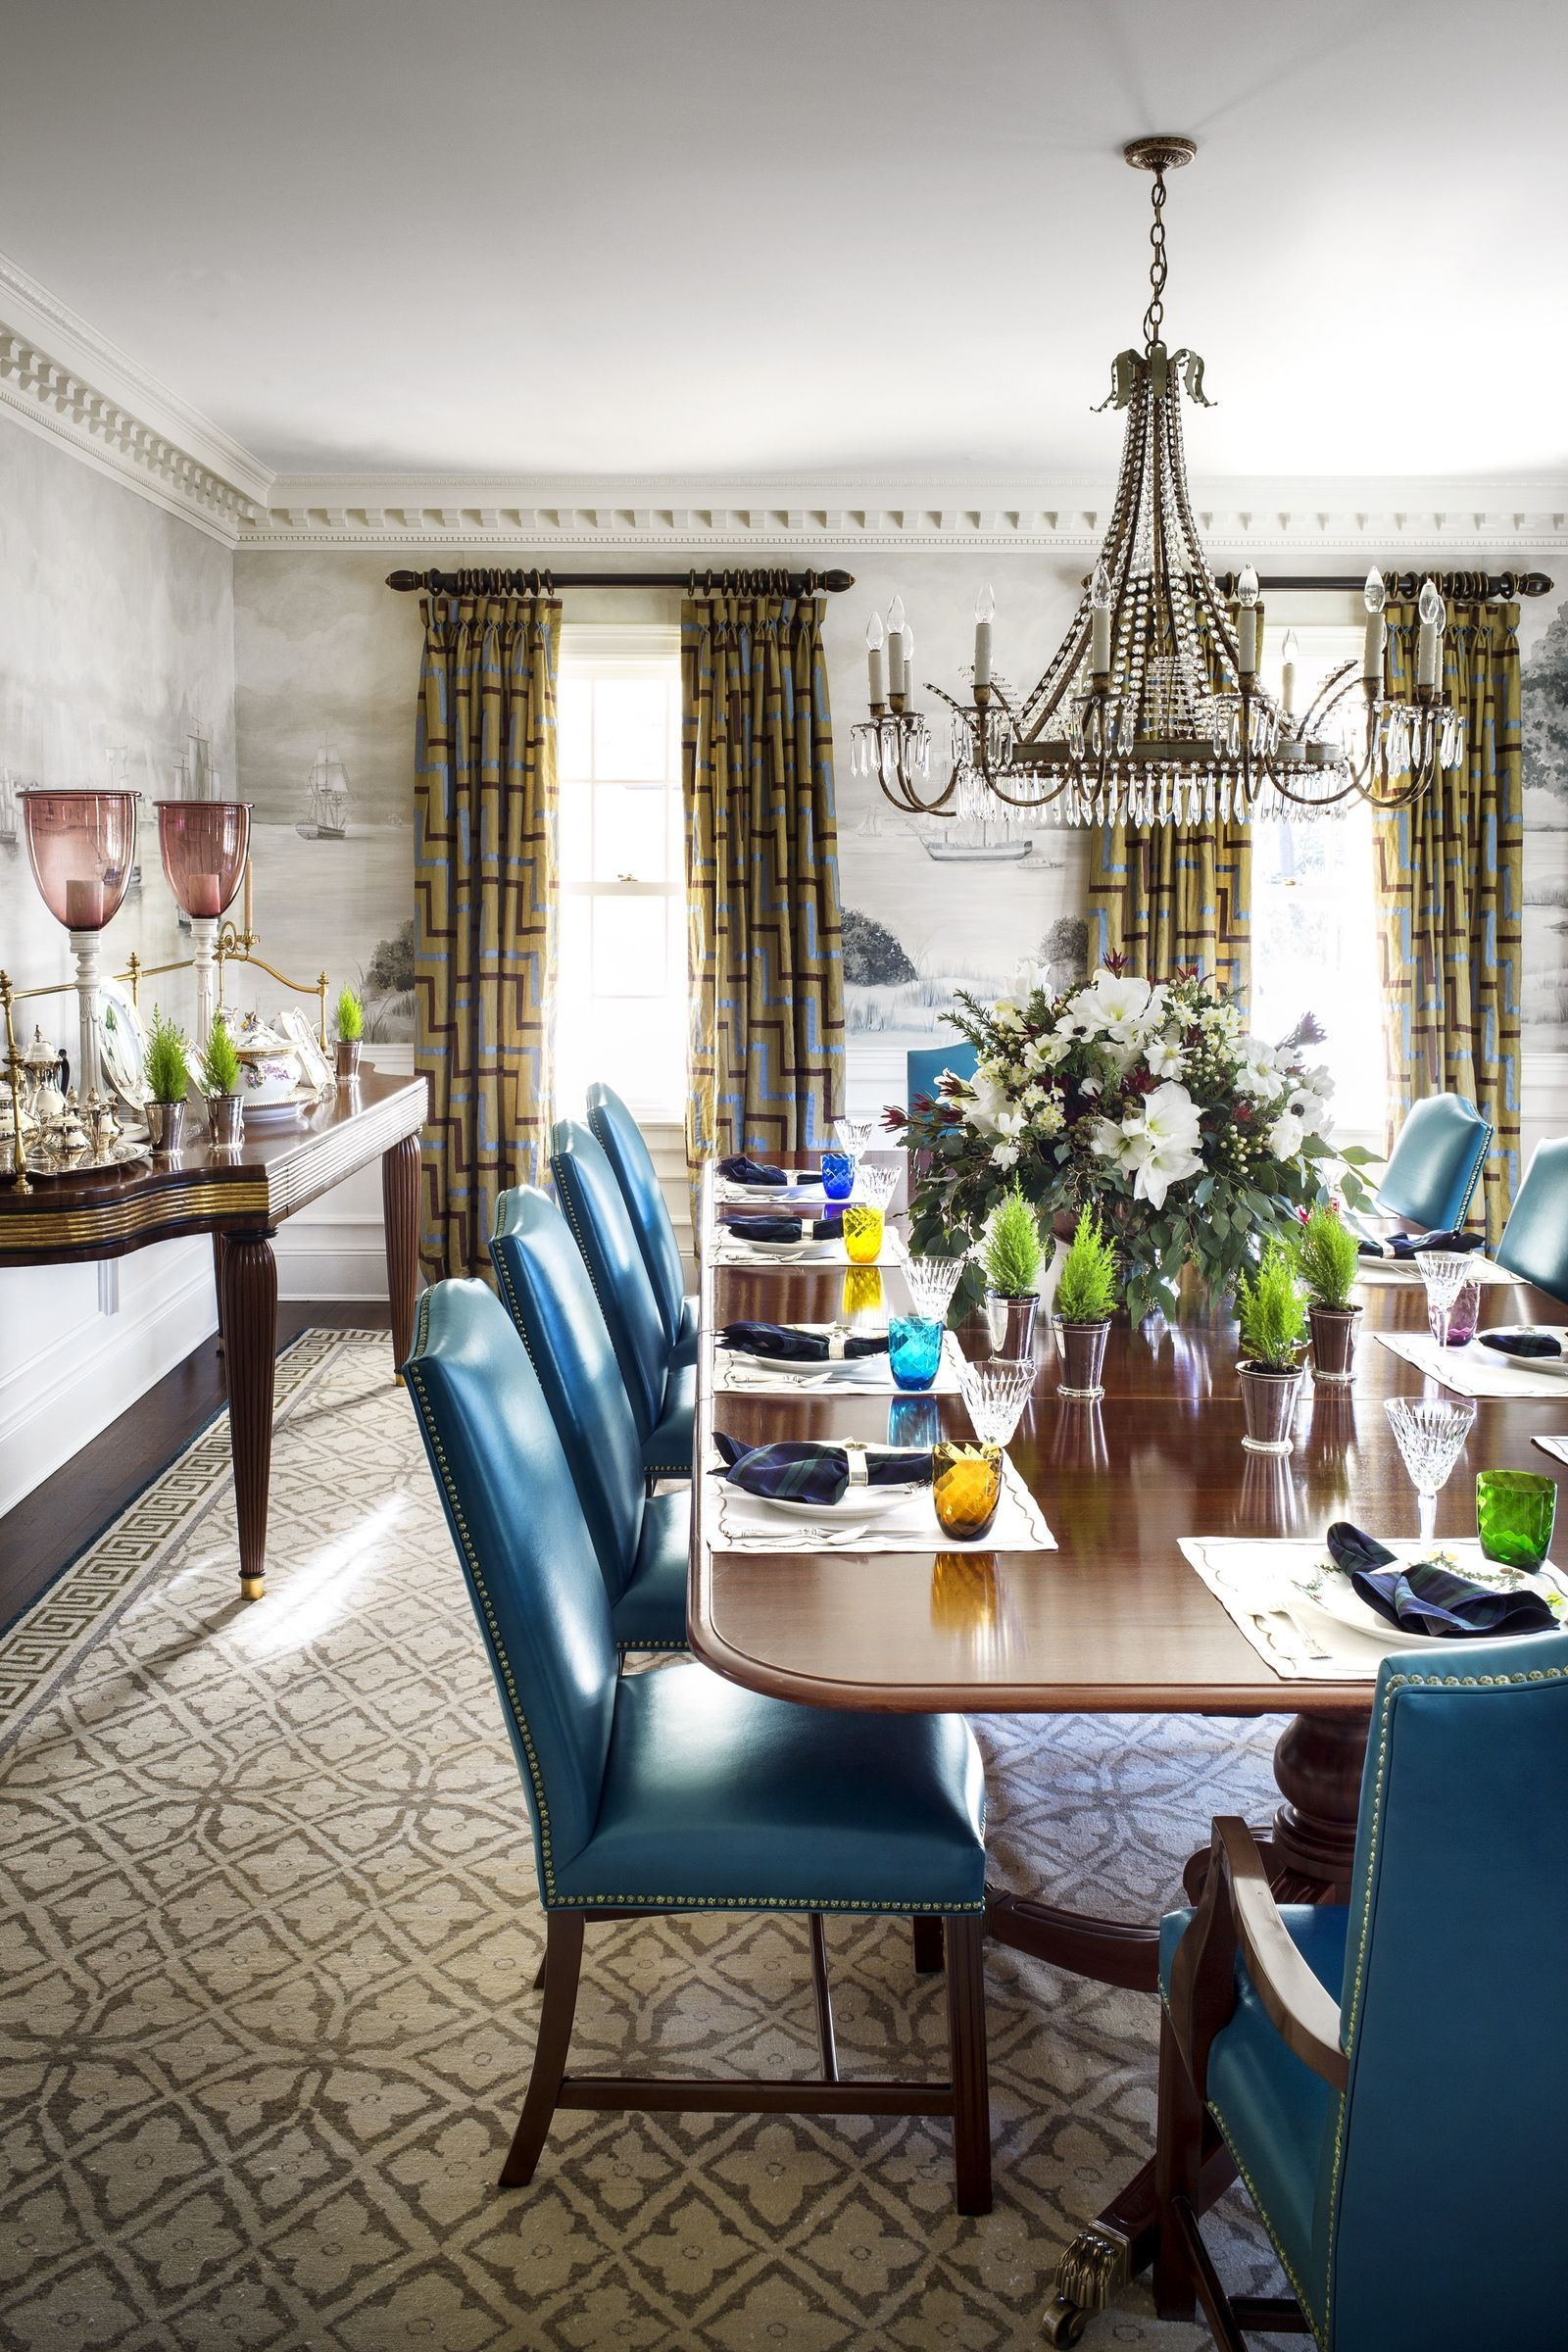 These 44 Table Decorations Make Your Christmas Feast Even Merrier Interior Design Dining Room Round Decor Decor